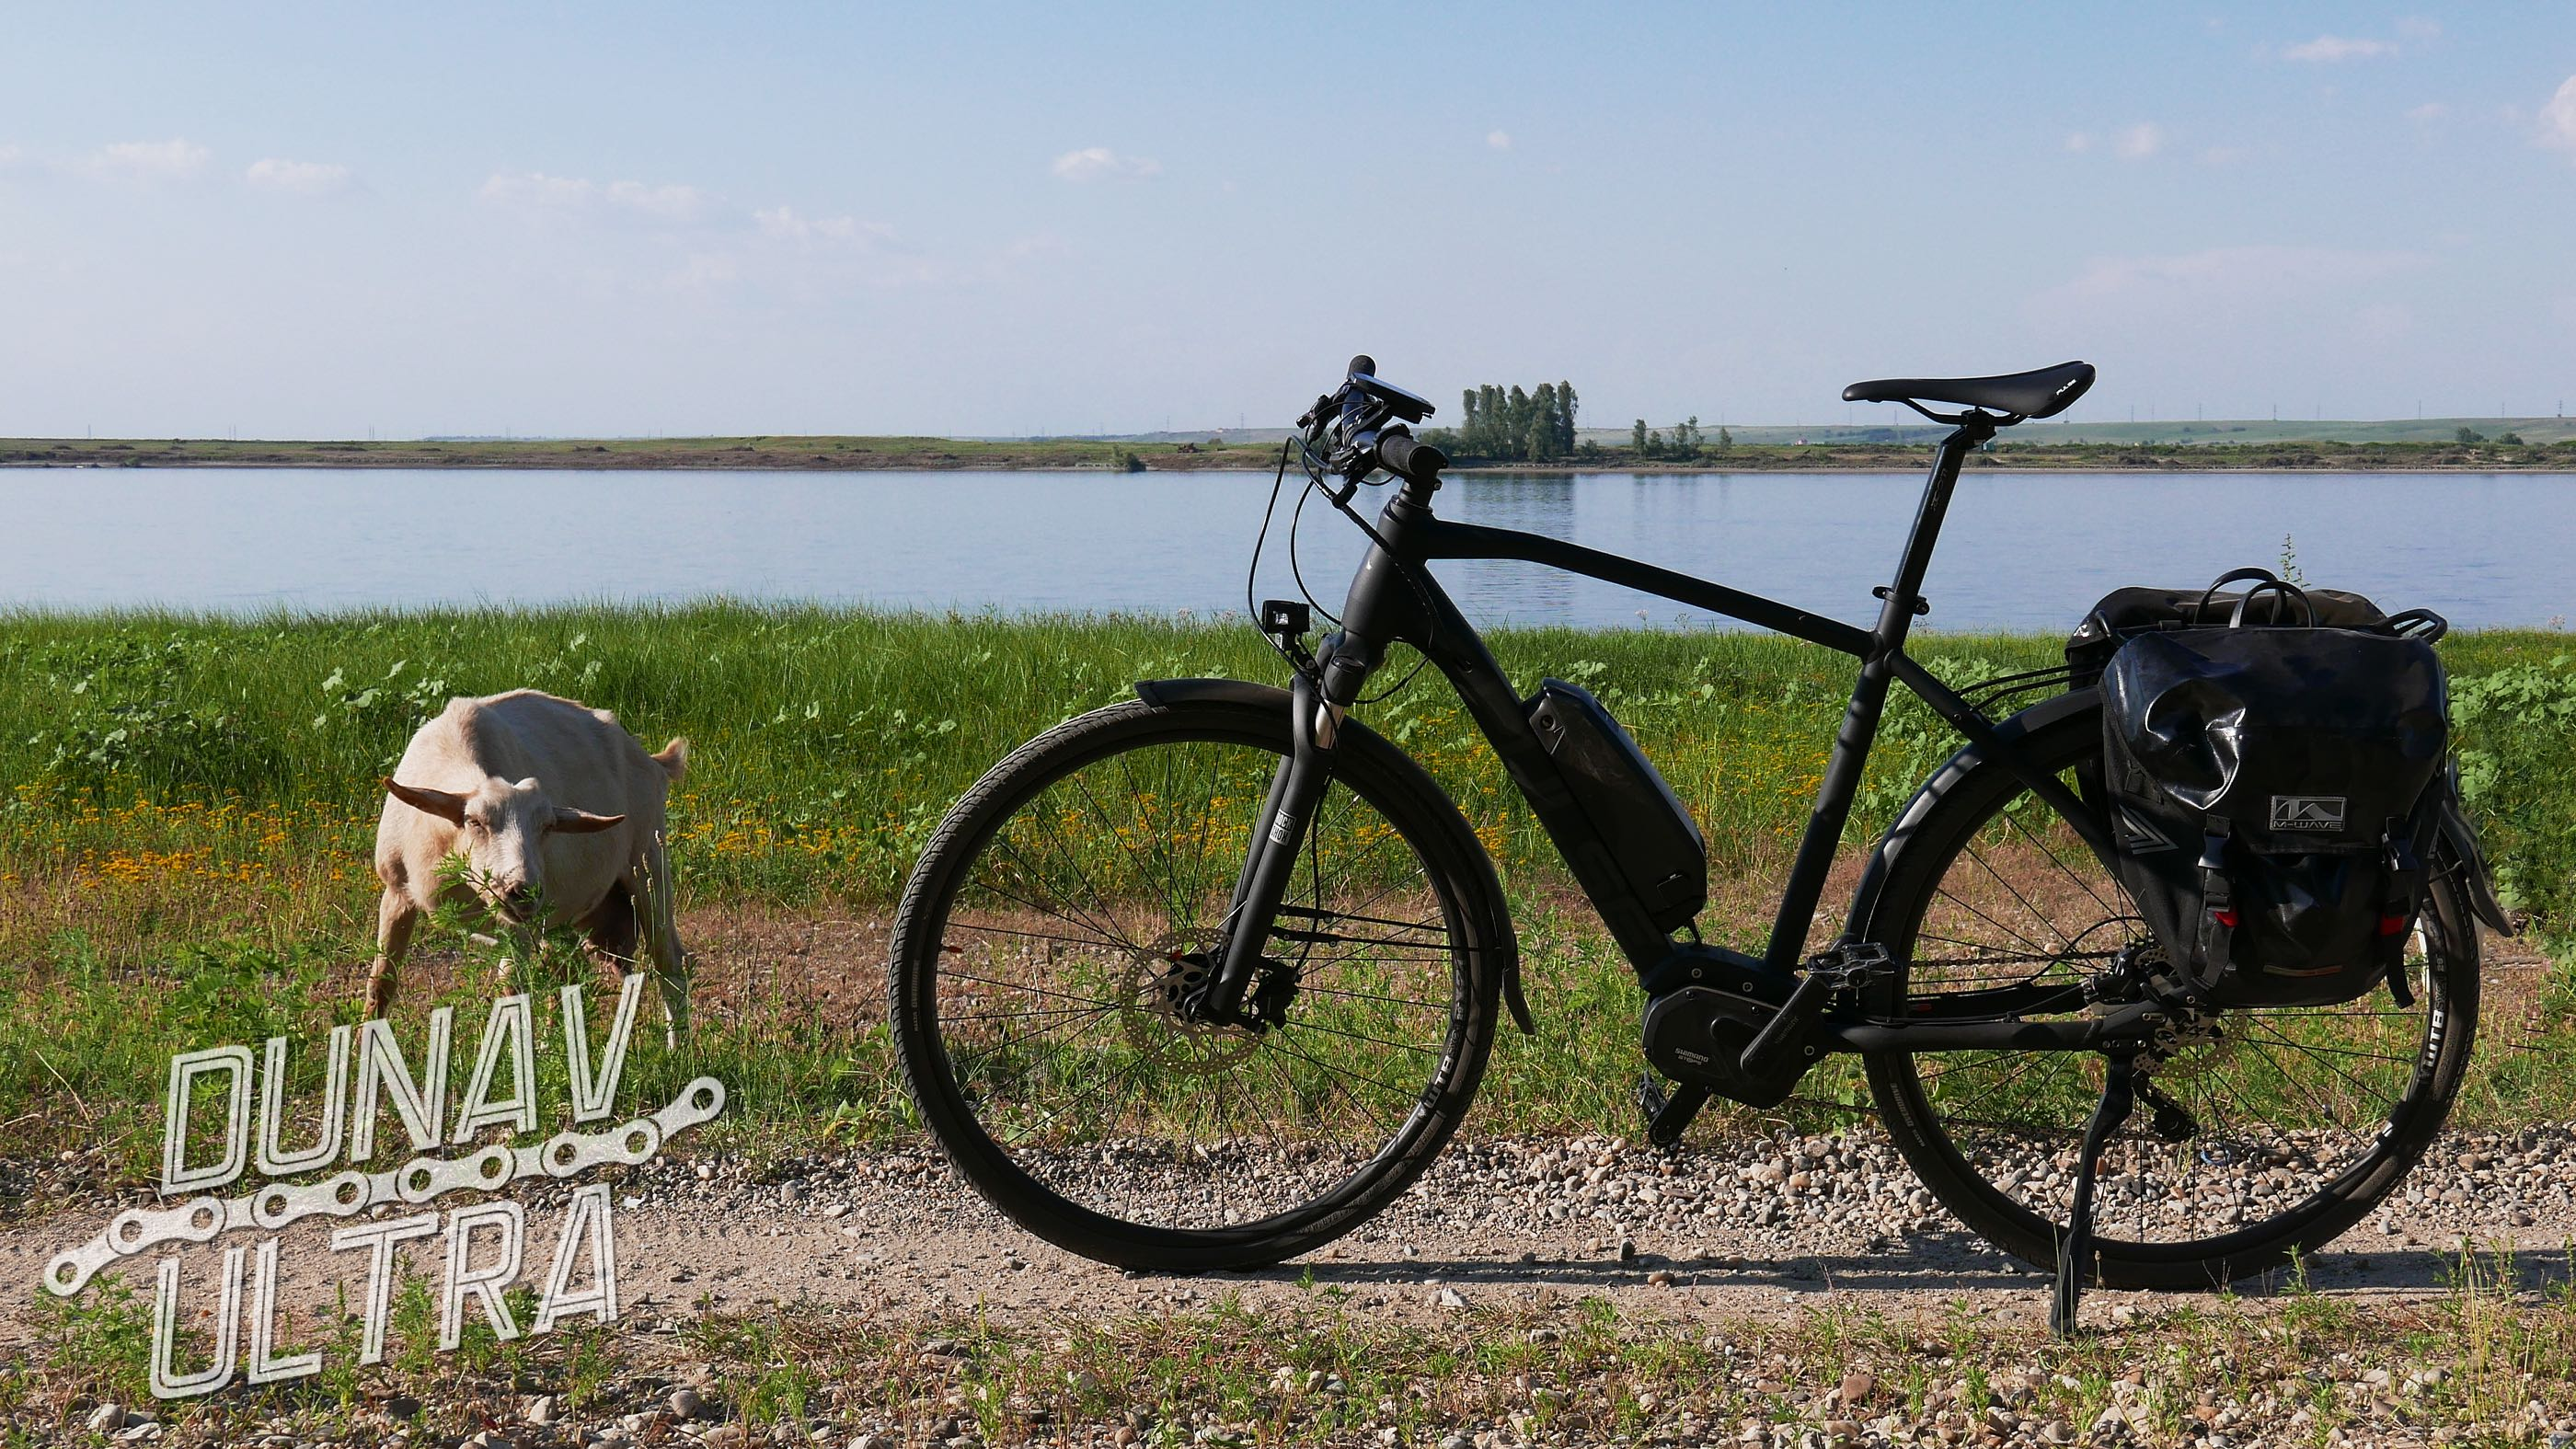 Cycling along the Danube in Bulgaria: (Un)expected pleasant combination (Part 3)